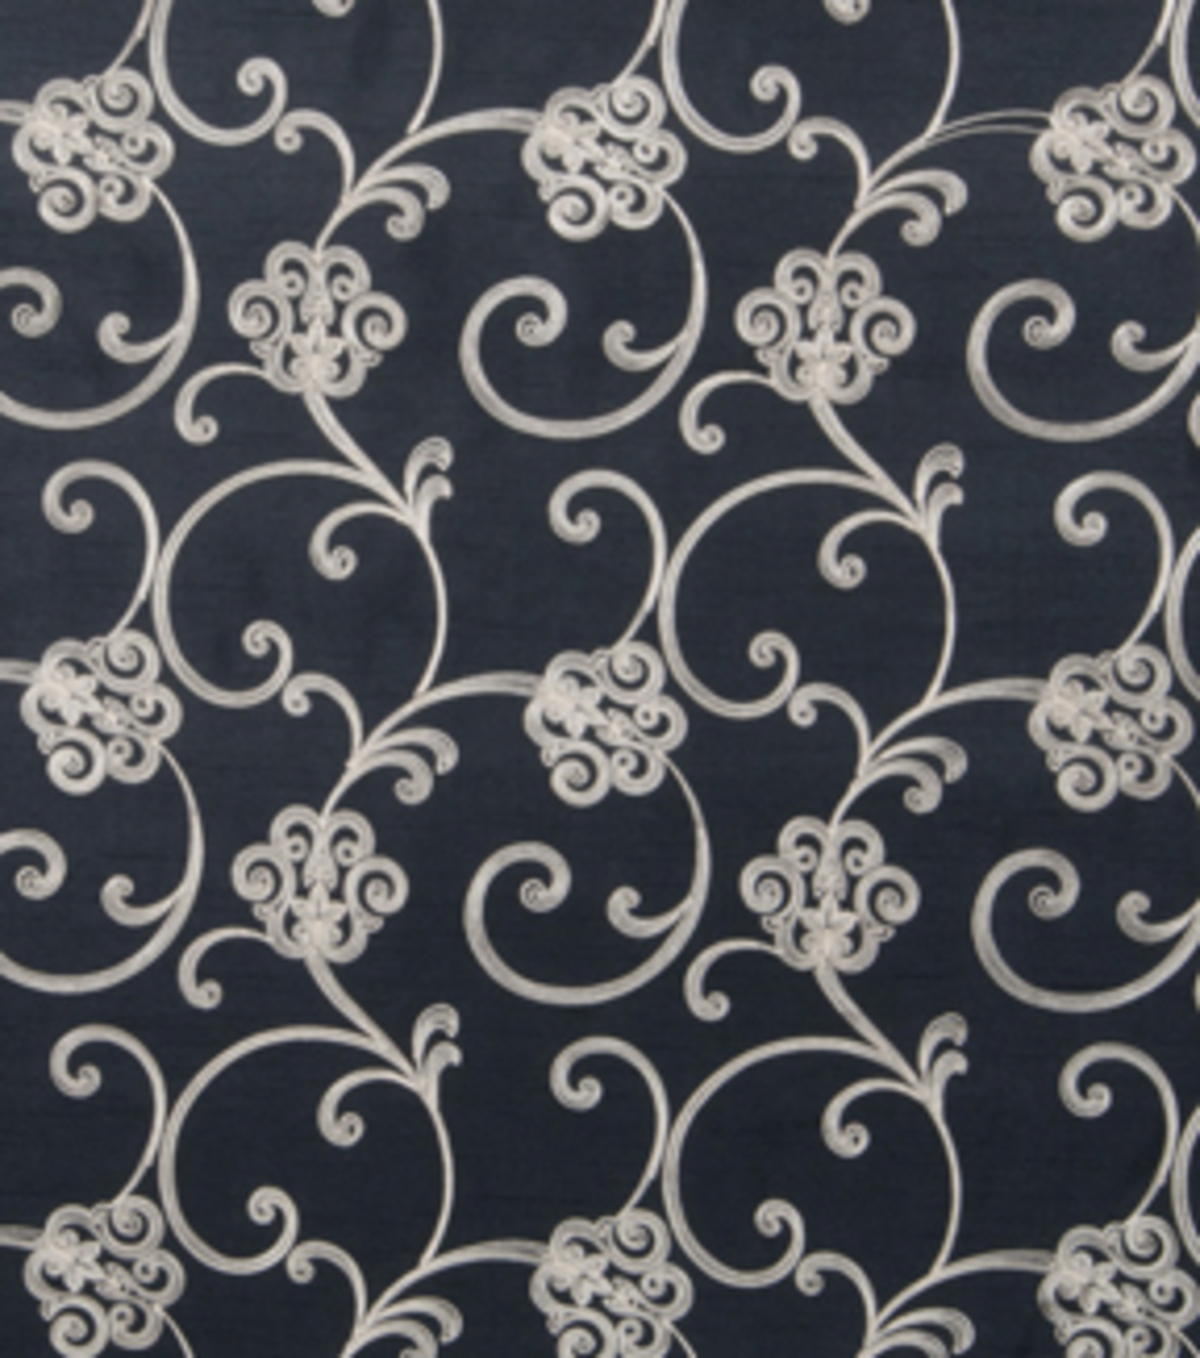 Home Decor 8\u0022x8\u0022 Fabric Swatch-Print Fabric Eaton Square Nolan Black